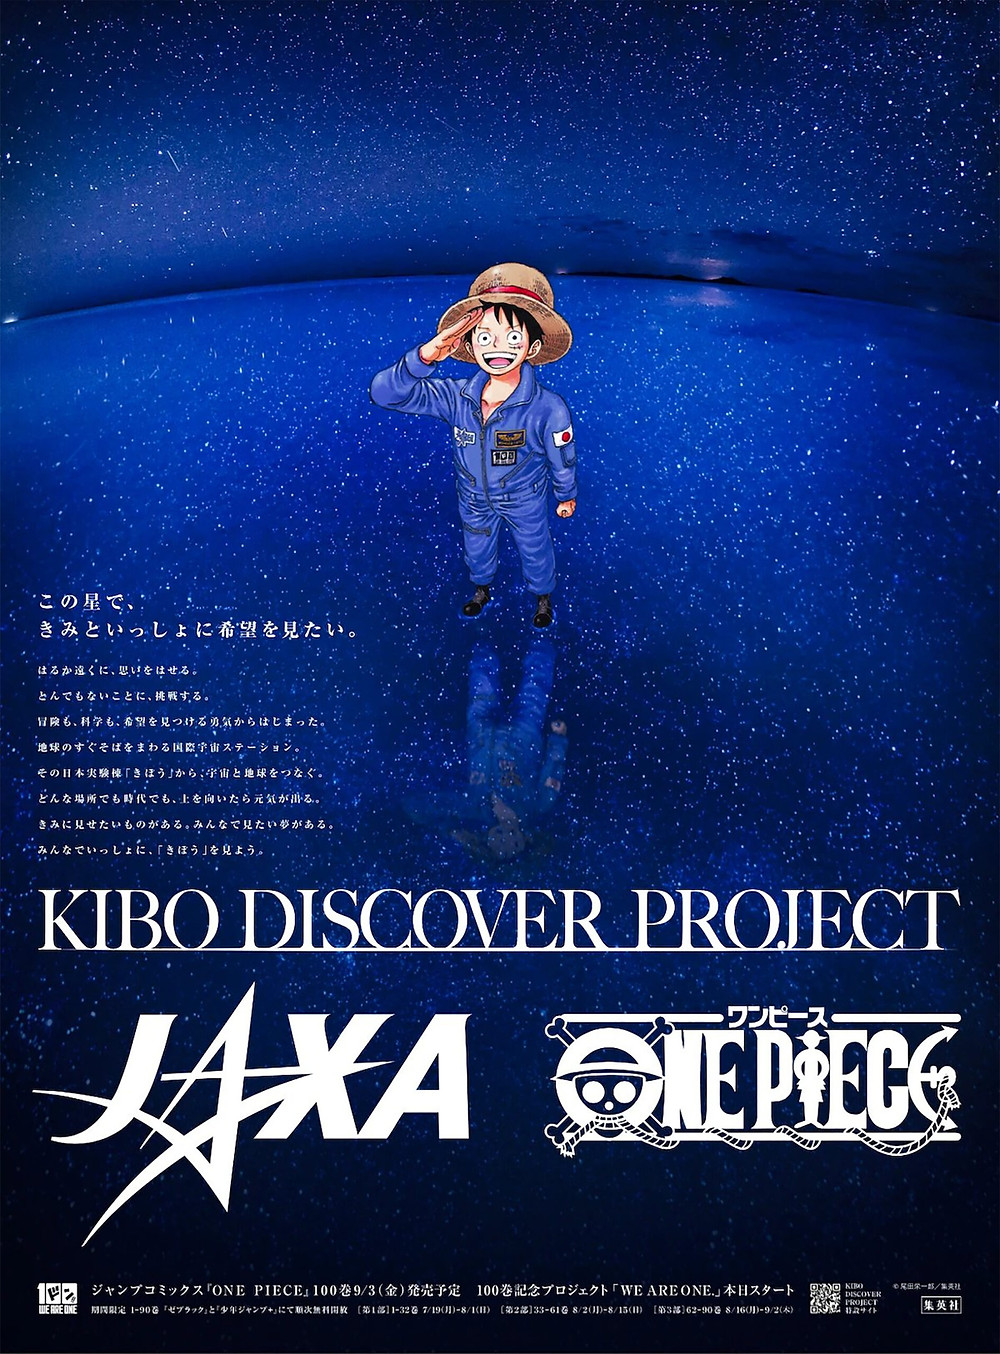 The 'Kibo Discover Project' poster